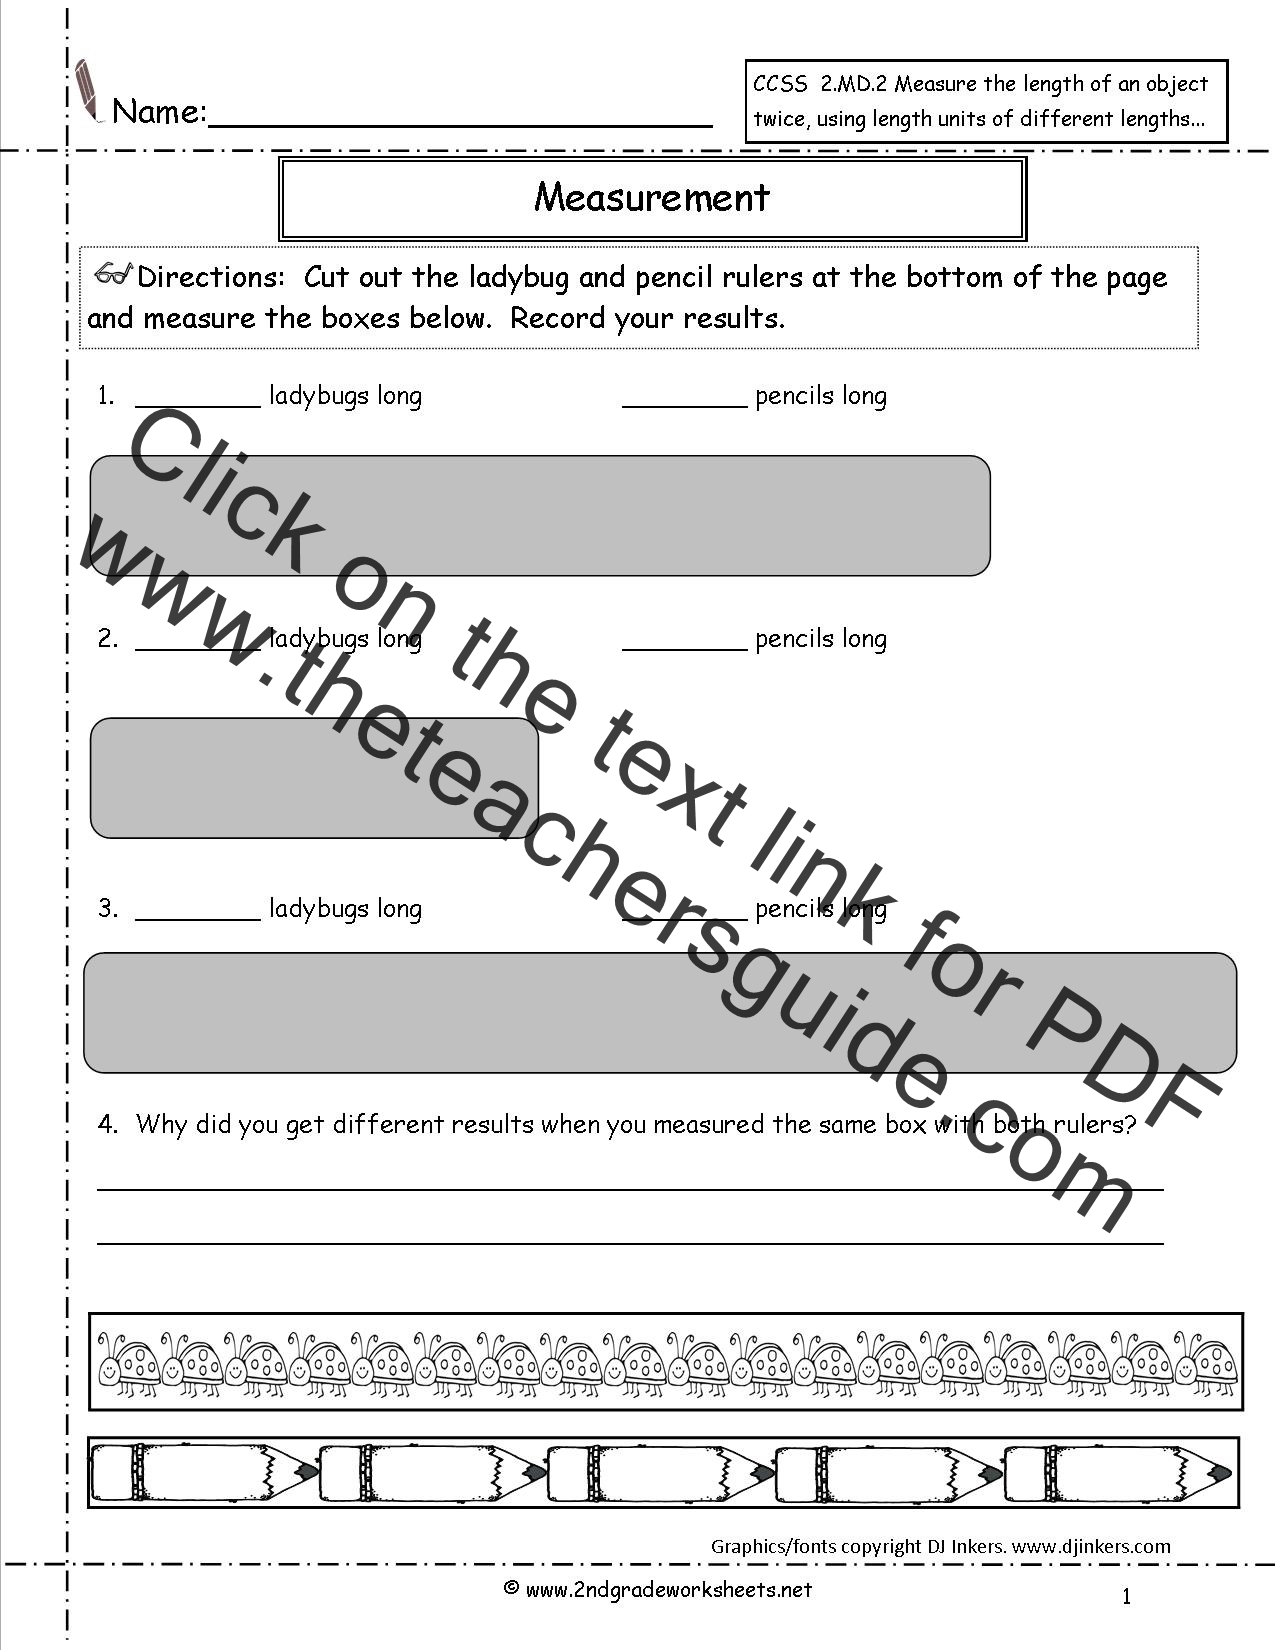 CCSS 2MD2 Worksheets Measuring and Estimating Lengths Worksheets – Measuring Worksheets for 2nd Grade